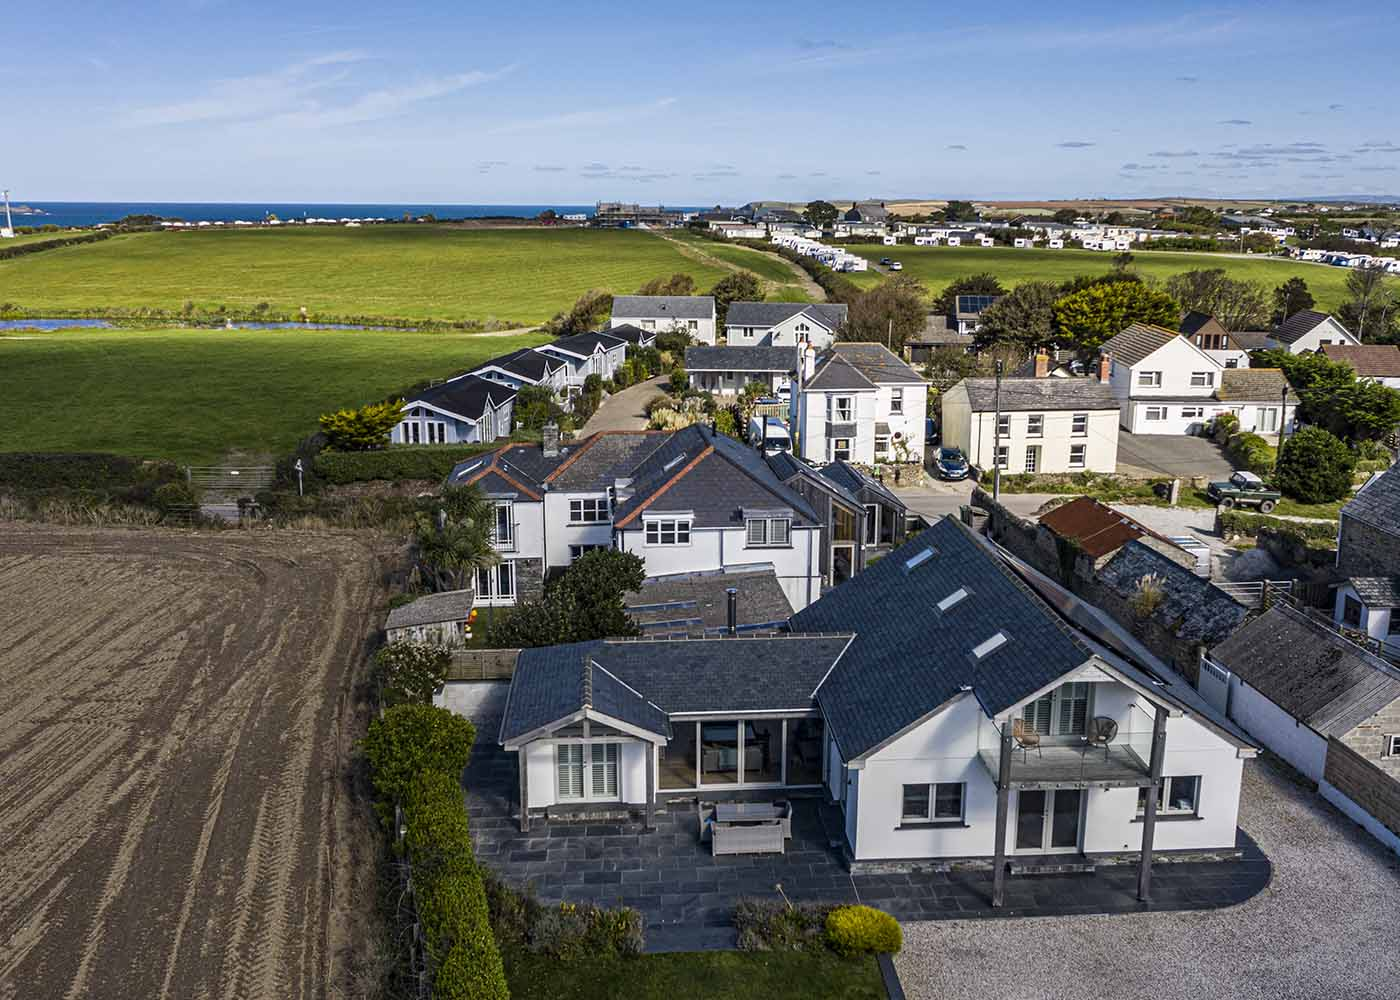 Holiday home aerial photography